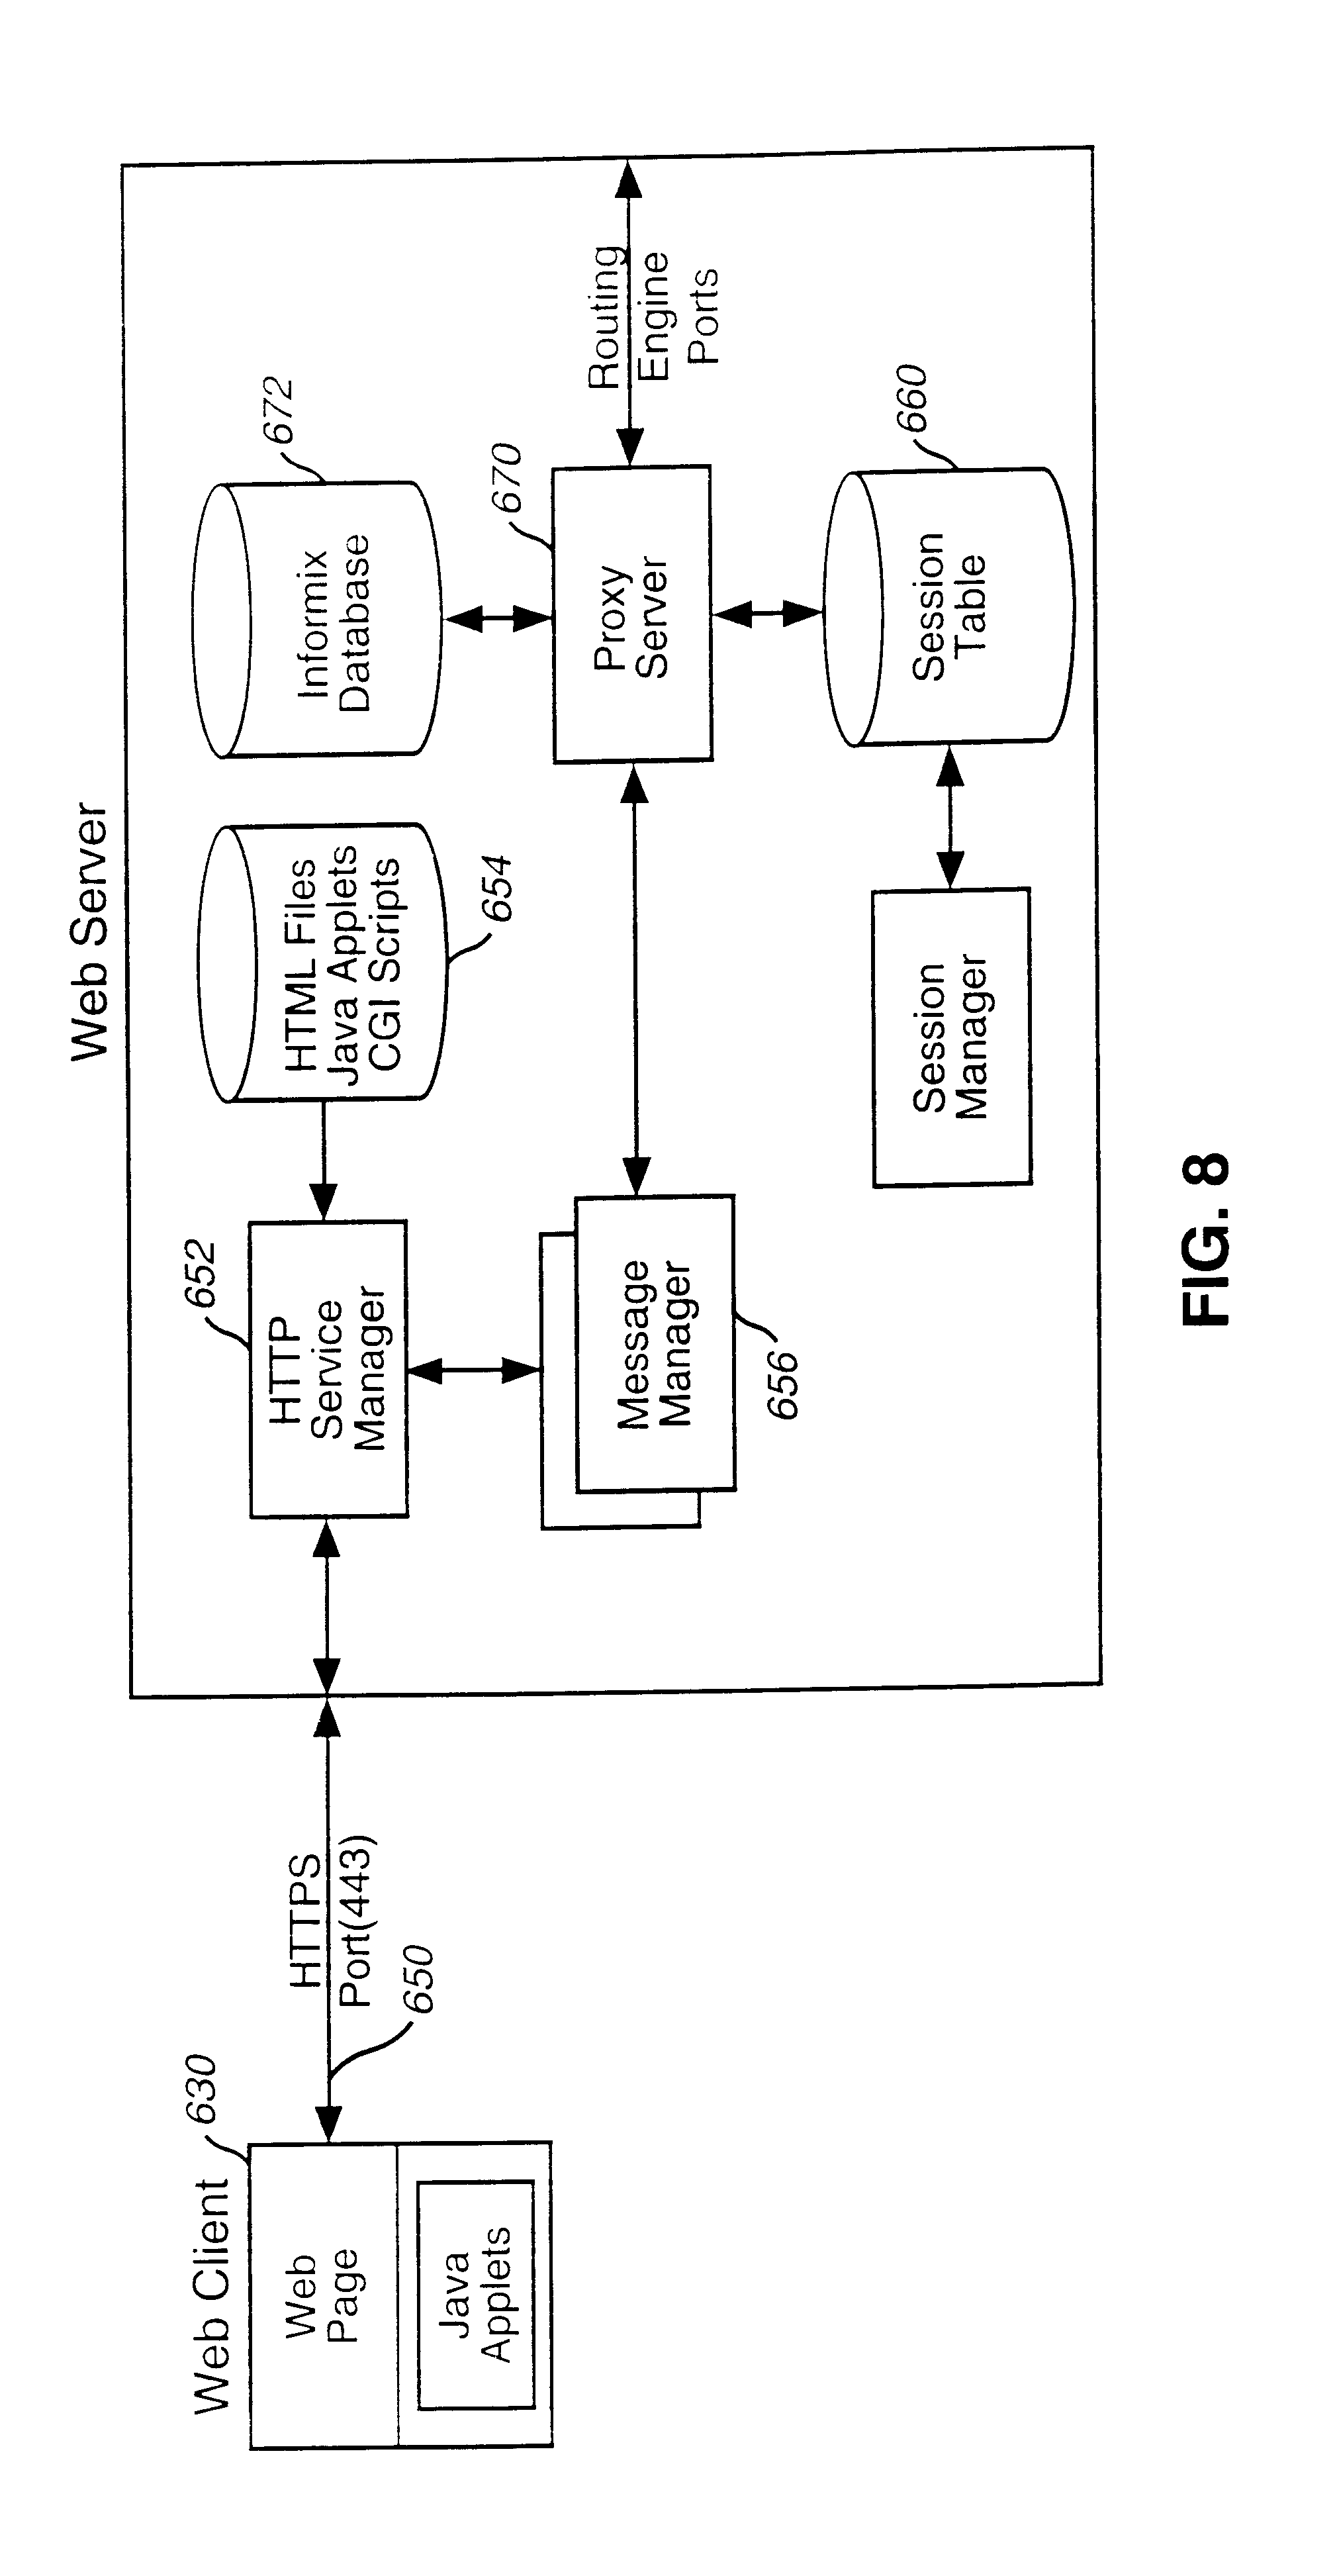 Us6611498b1 Integrated Customer Web Station For Based Call This Java Applet Is An Electronic Circuit Simulator A Great Way To Management Google Patents